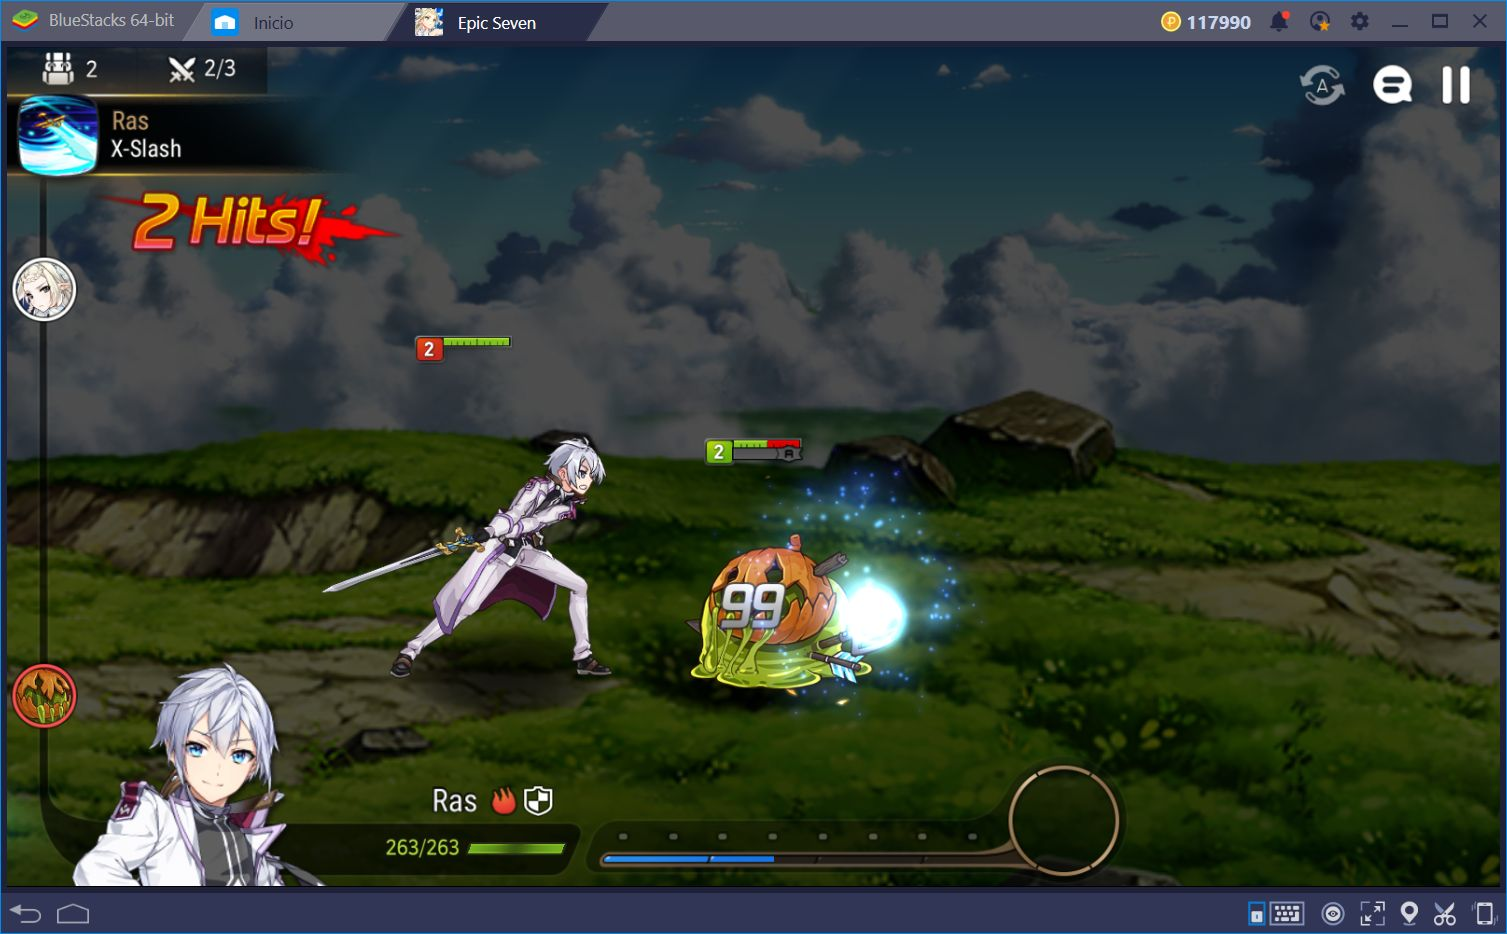 Top 5 Gacha Games to Enjoy This Fall on BlueStacks